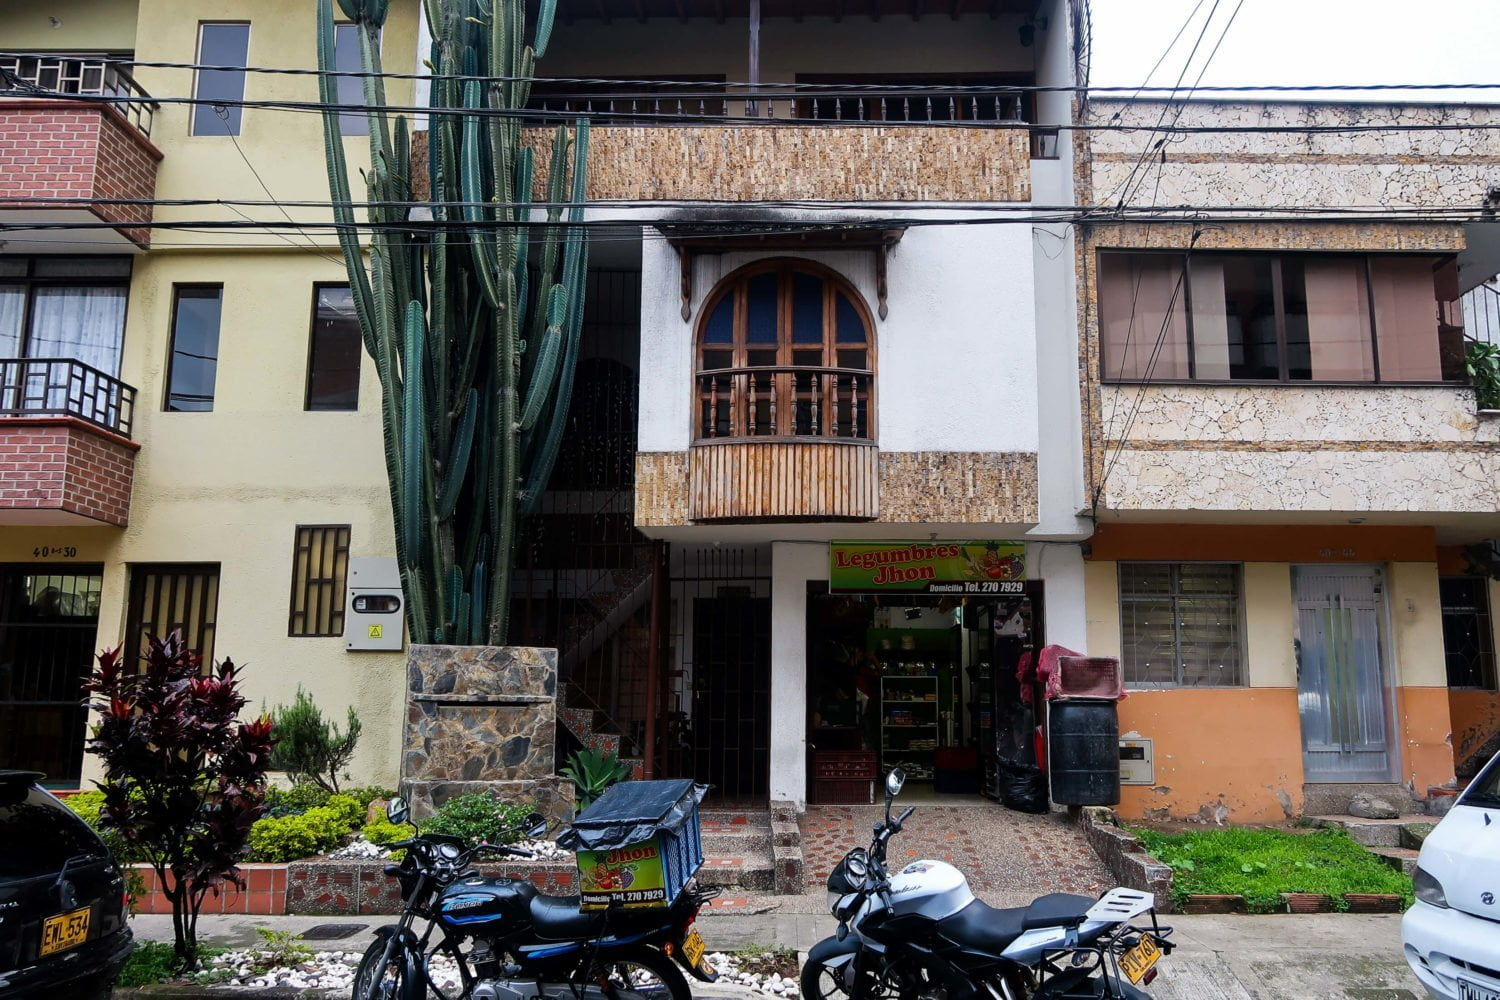 typical 2-3 story house in el dorado envigado medellin